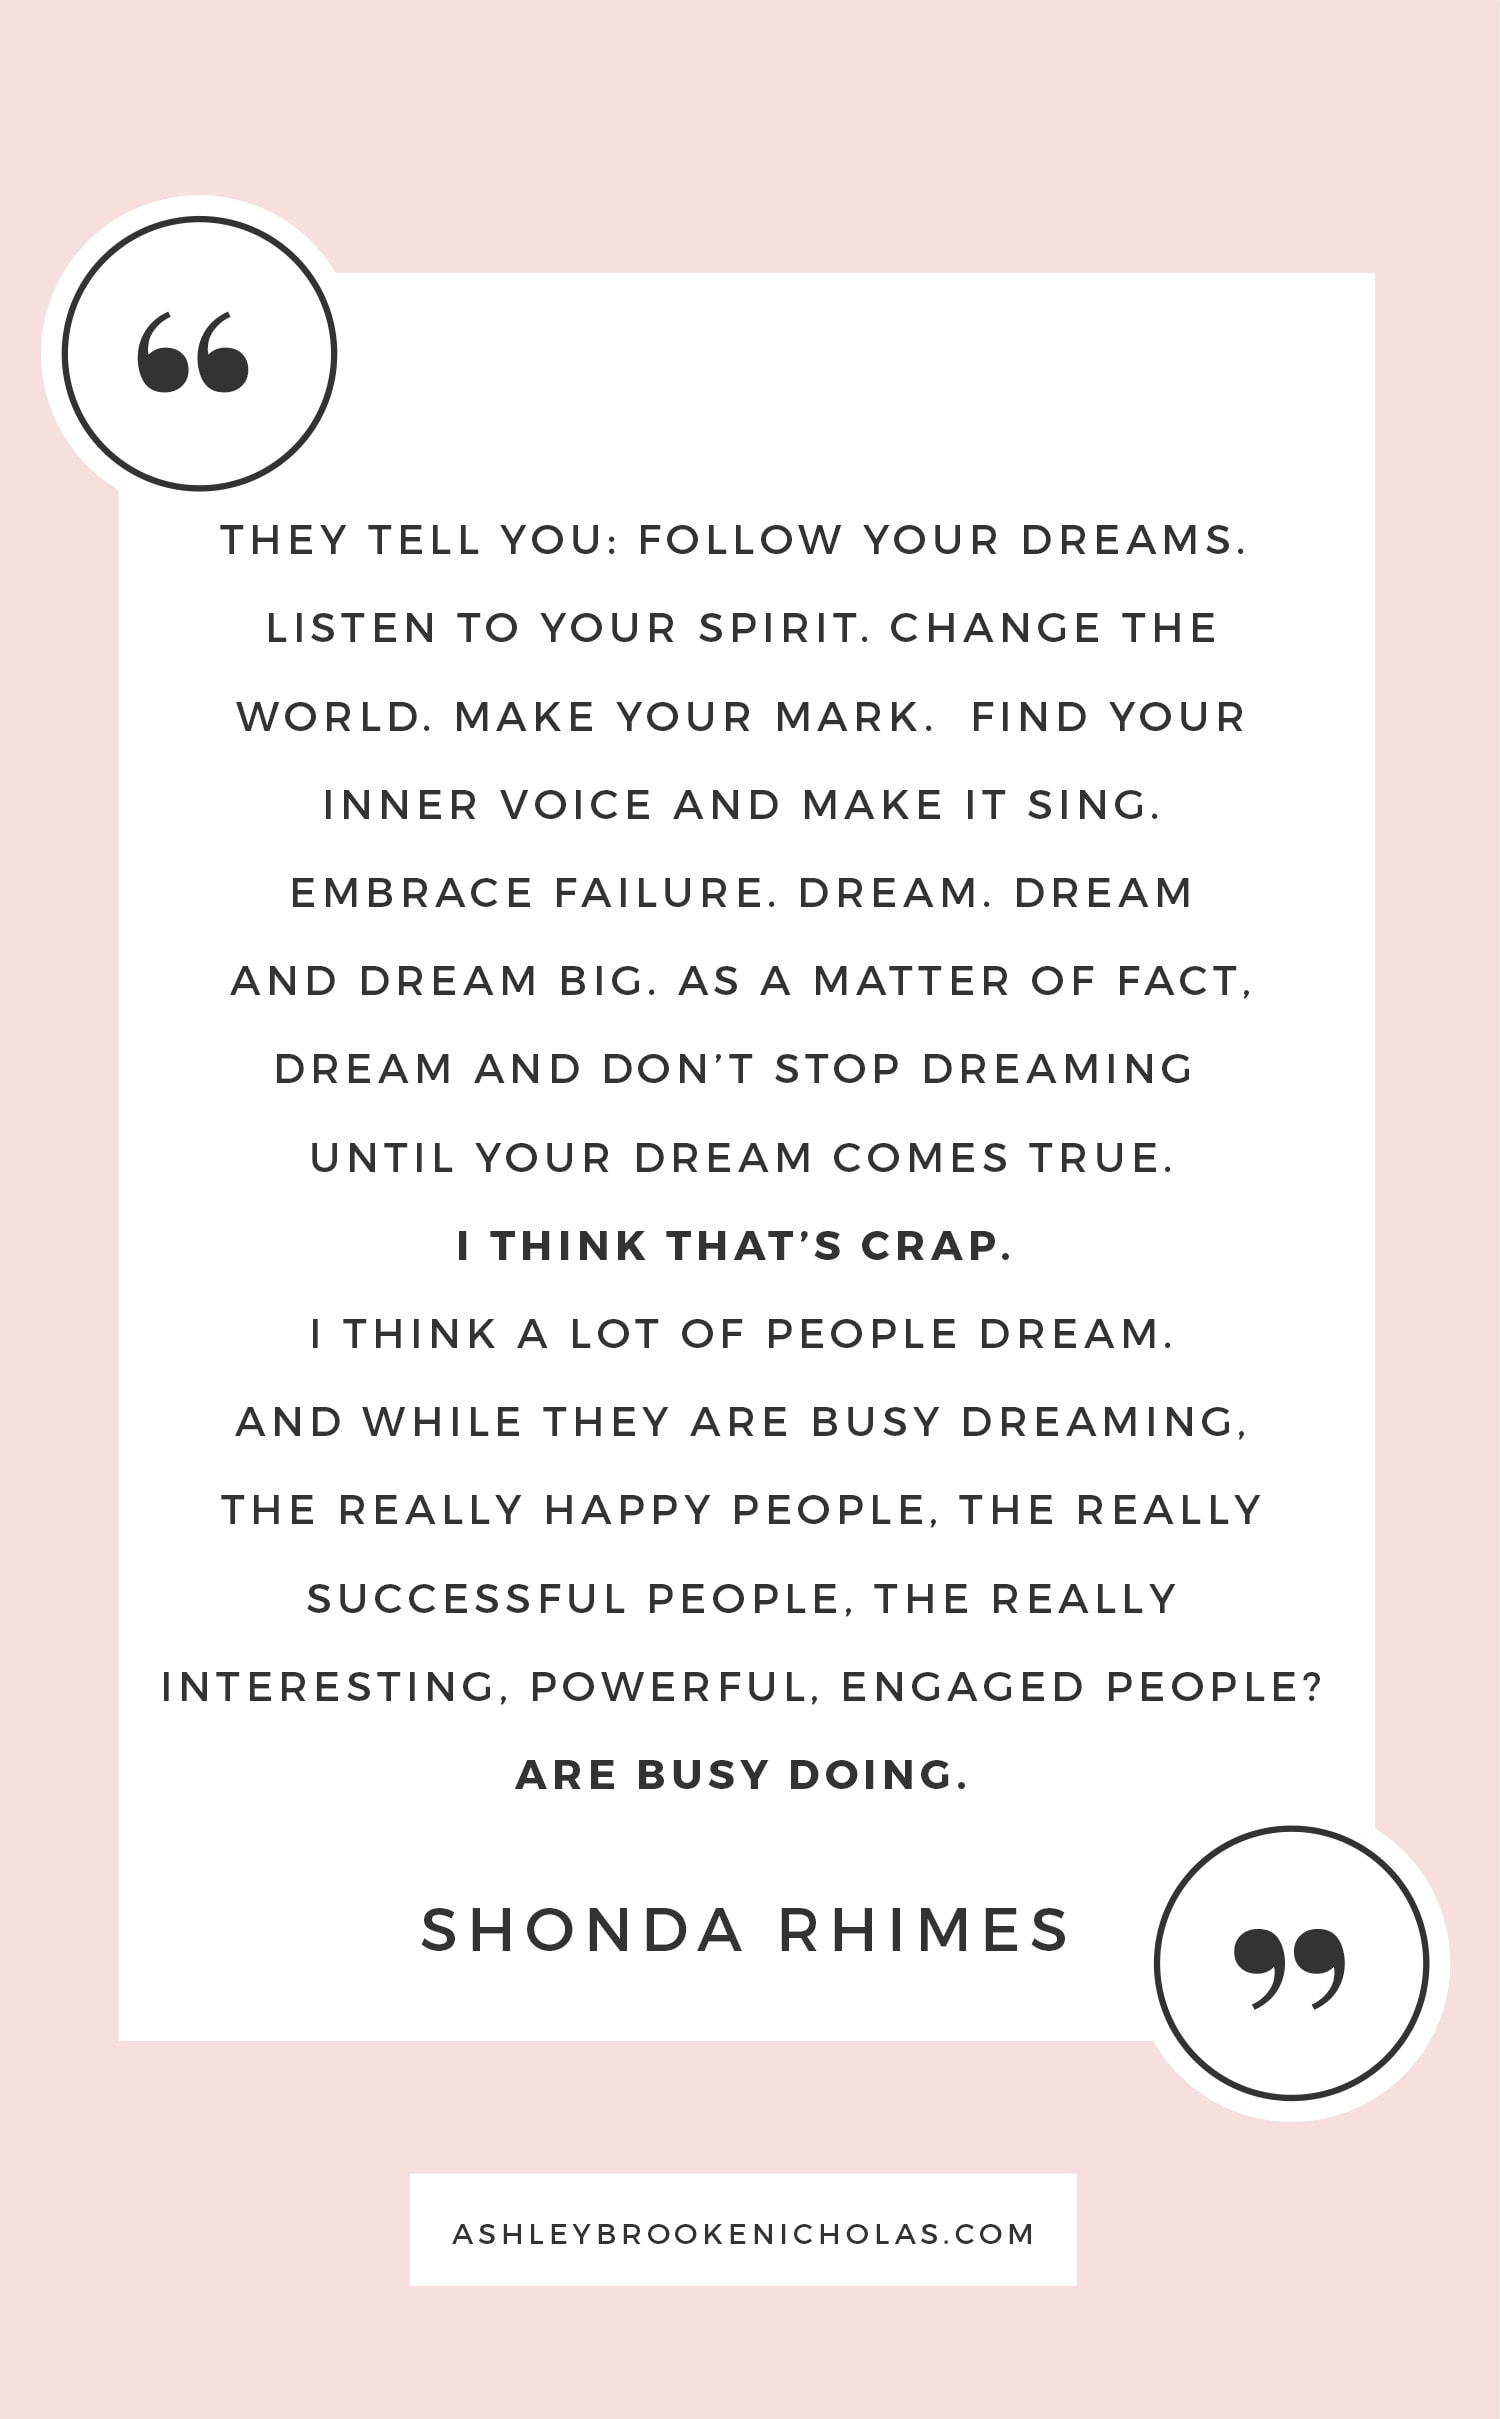 """The best Shonda Rhimes quotes   """"They tell you: Follow your dreams. Listen to your spirit. Change the world. Make your mark. Find your inner voice and make it sing. Embrace failure. Dream. Dream and dream big. As a matter of fact, dream and don't stop dreaming until your dream comes true. I think that's crap. I think a lot of people dream. And while they are busy dreaming, the really happy people, the really successful people, the really interesting, powerful, engaged people? Are busy doing."""""""